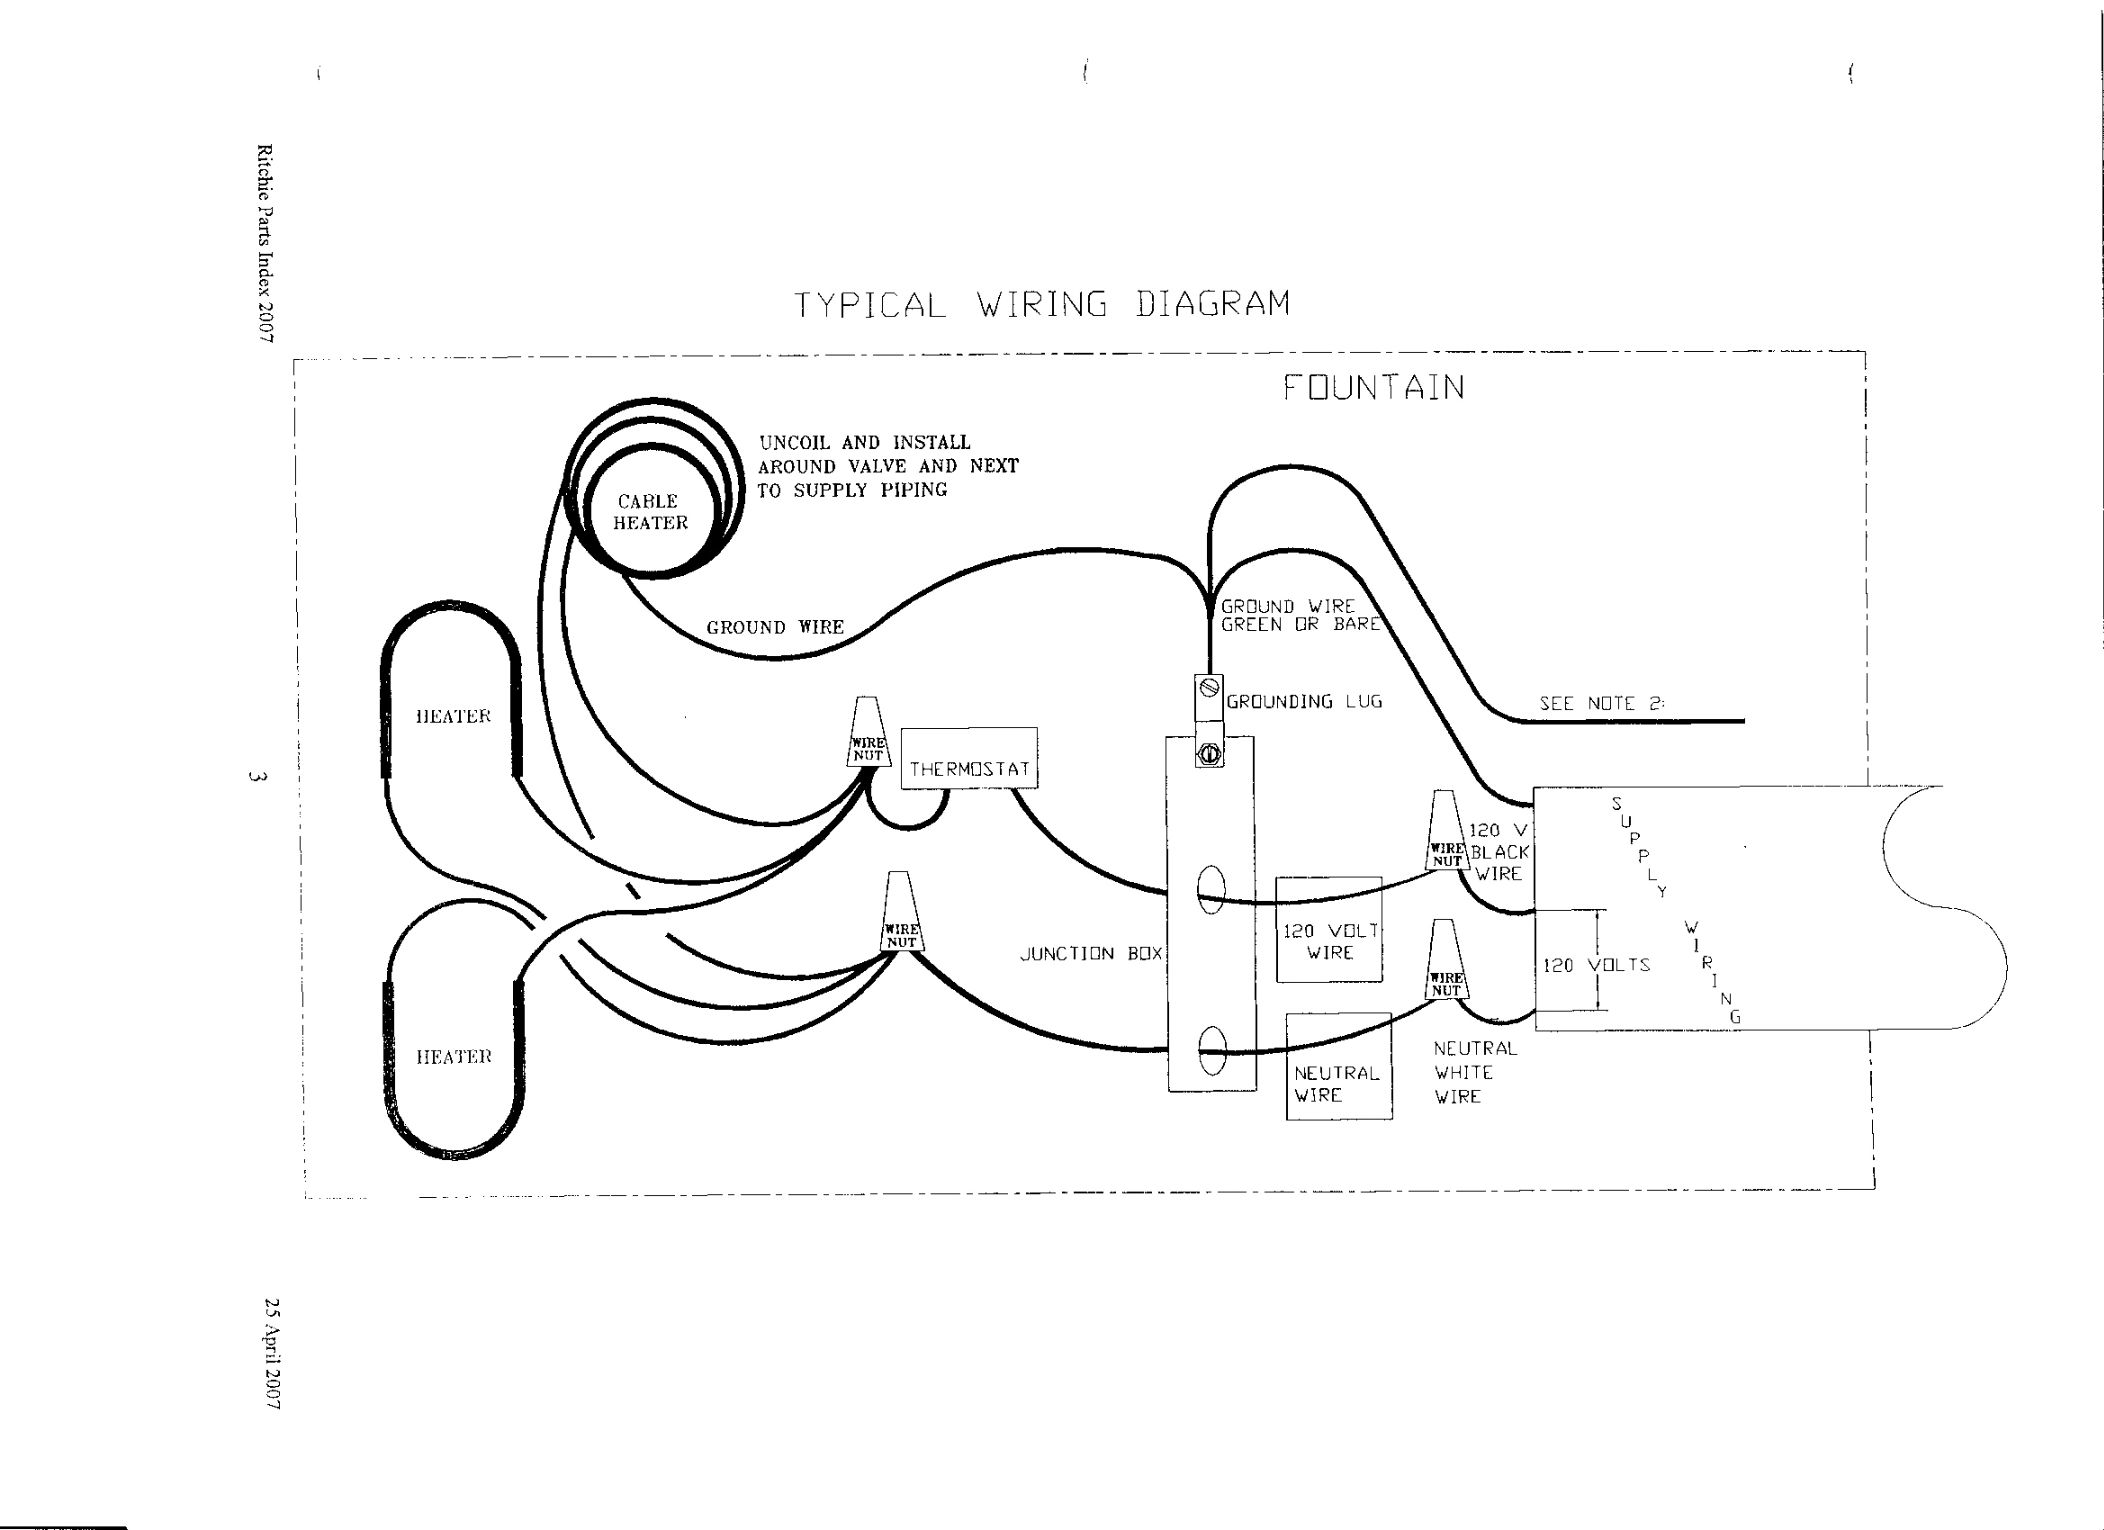 Typical Wiring Diagram typical wiring diagram for waterers and fountains Basic Electrical Wiring Diagrams at soozxer.org